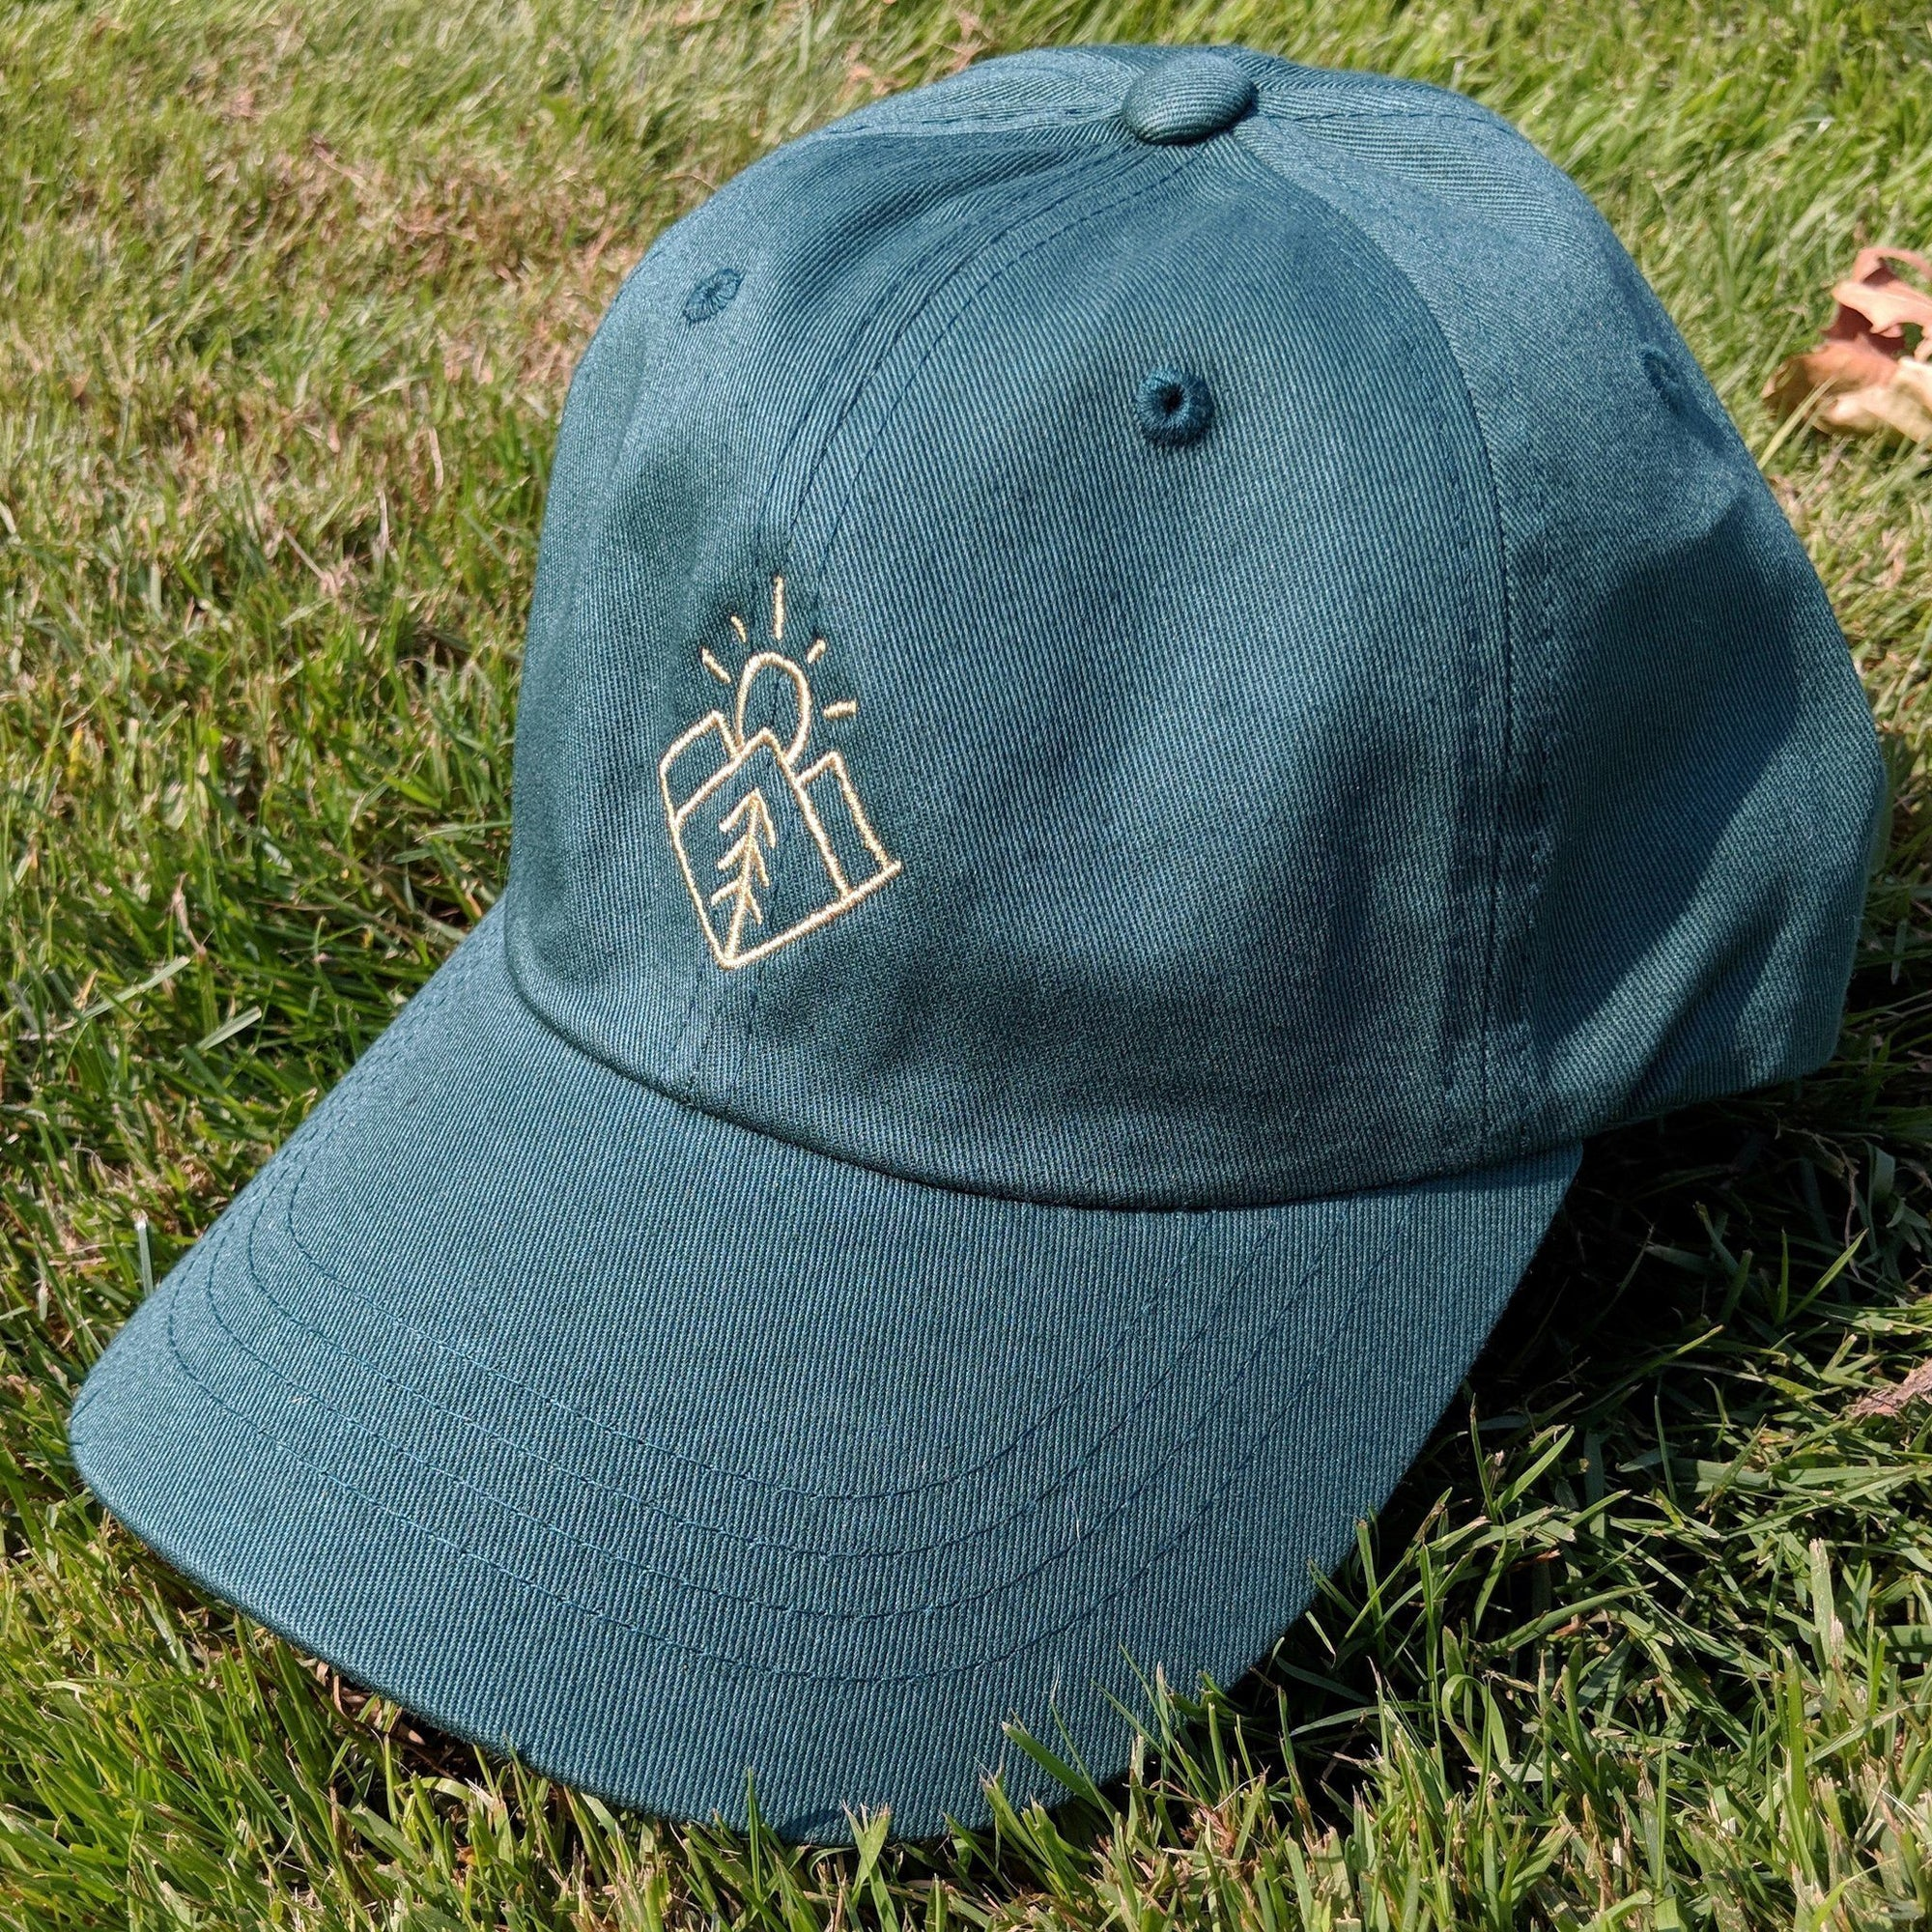 SNW - Minimal Mountains, Sun, Trees Baseball Cap - Knock Your Socks Off